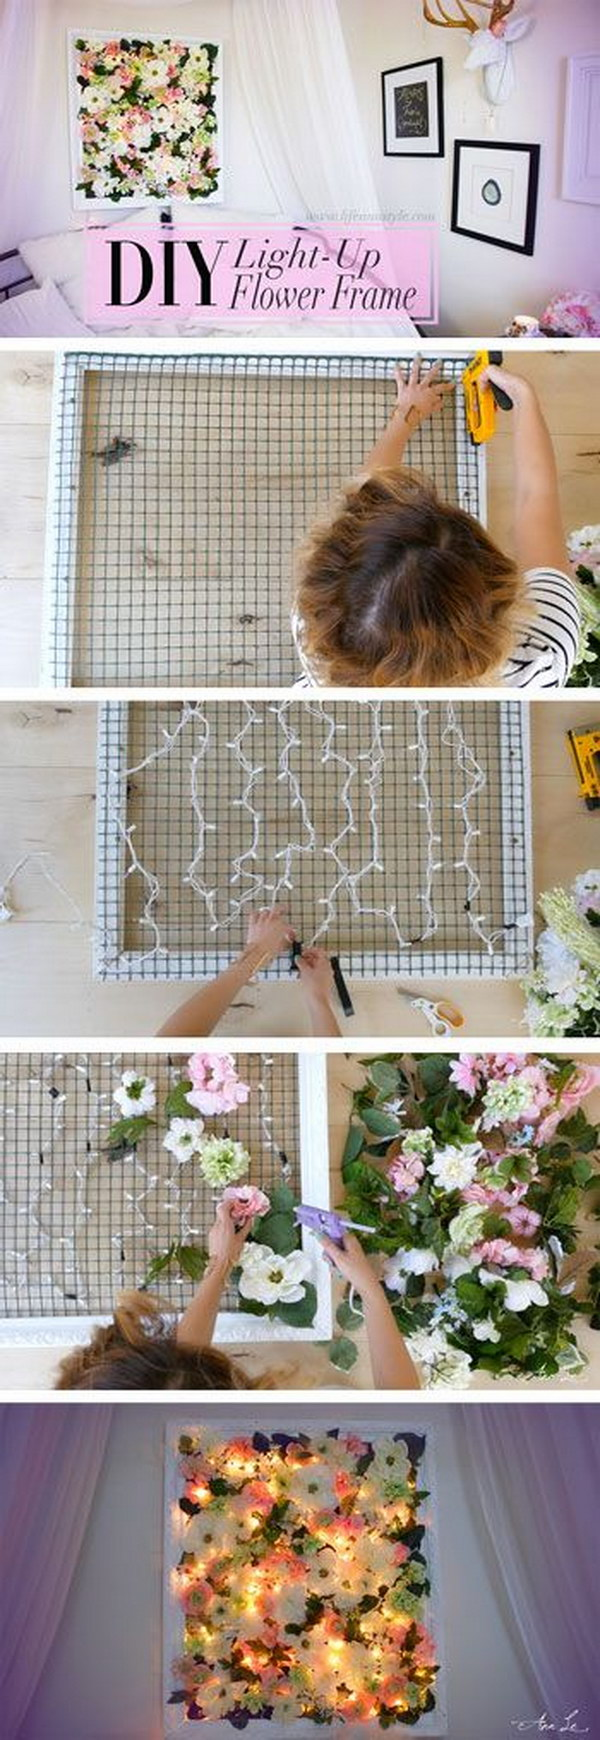 DIY Light Up Flower Frame Backdrop